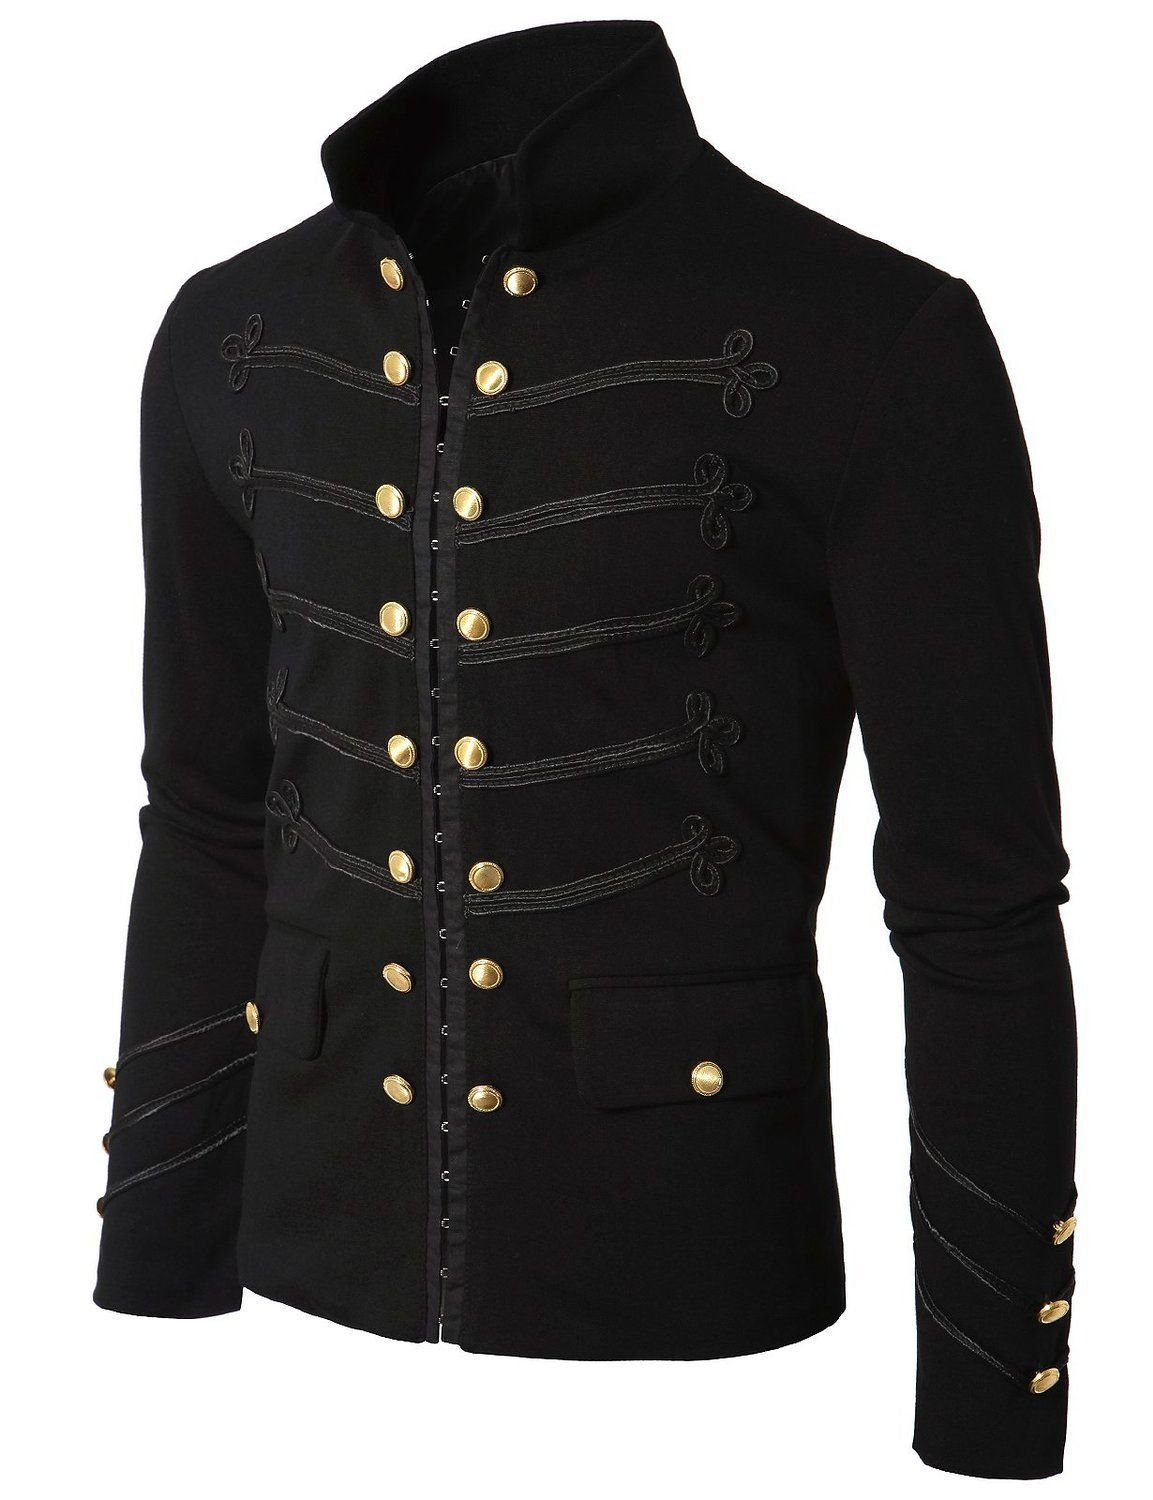 Handmade Black Embroidery Military Napoleon Hook Jacket